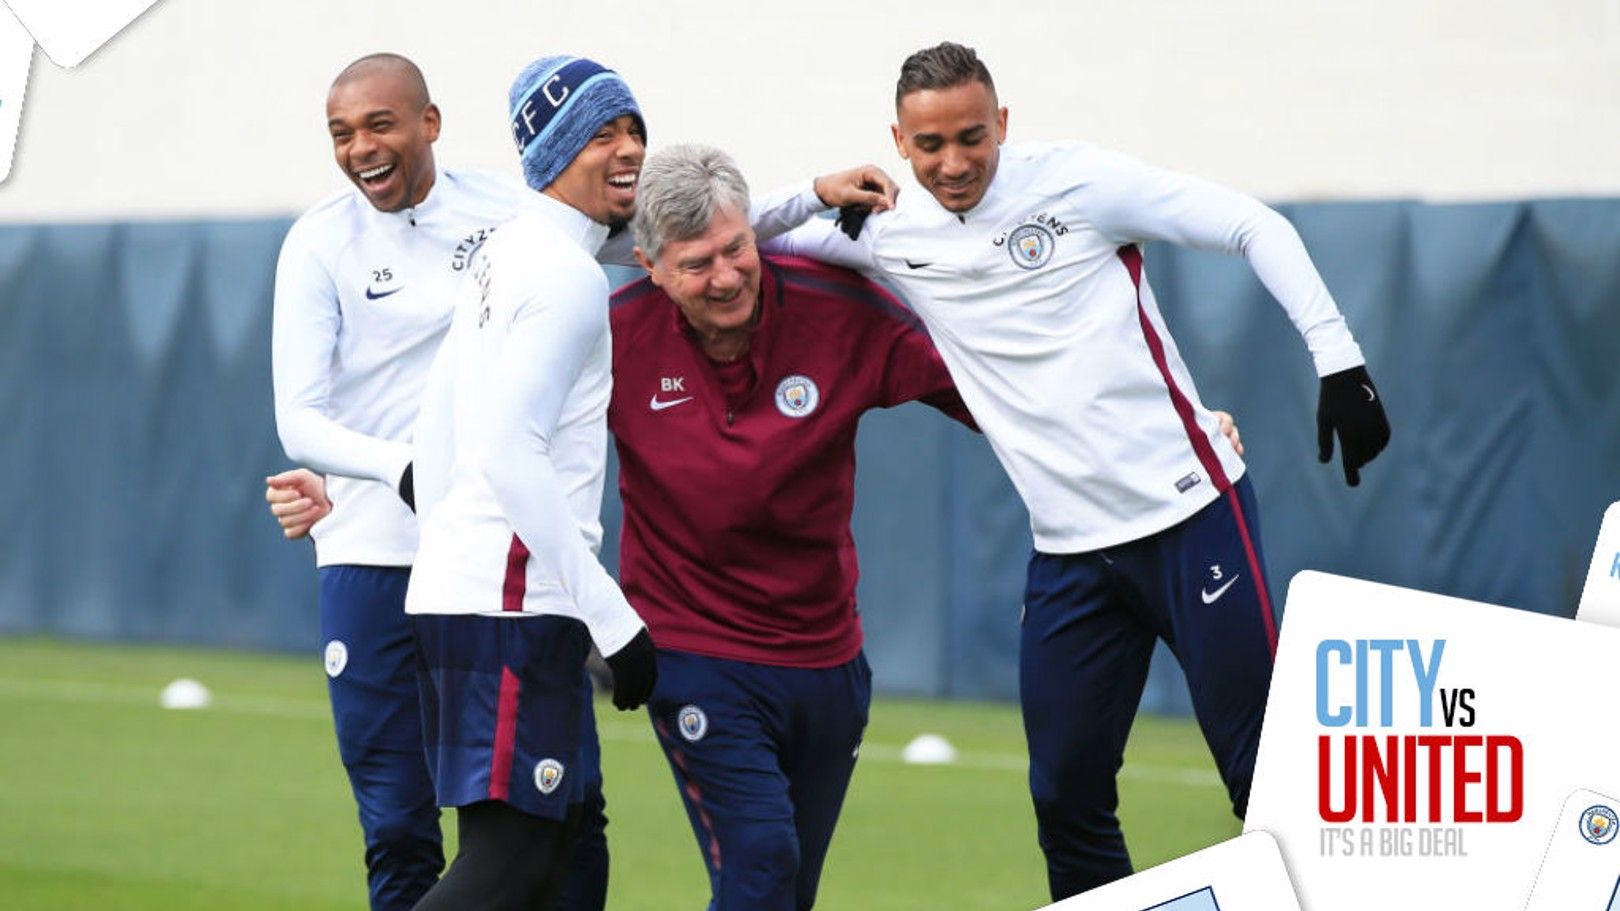 CENTRE OF ATTENTION: Brian Kidd enjoys a light moment in training with Fernandinho, Gabriel Jesus and Danilo